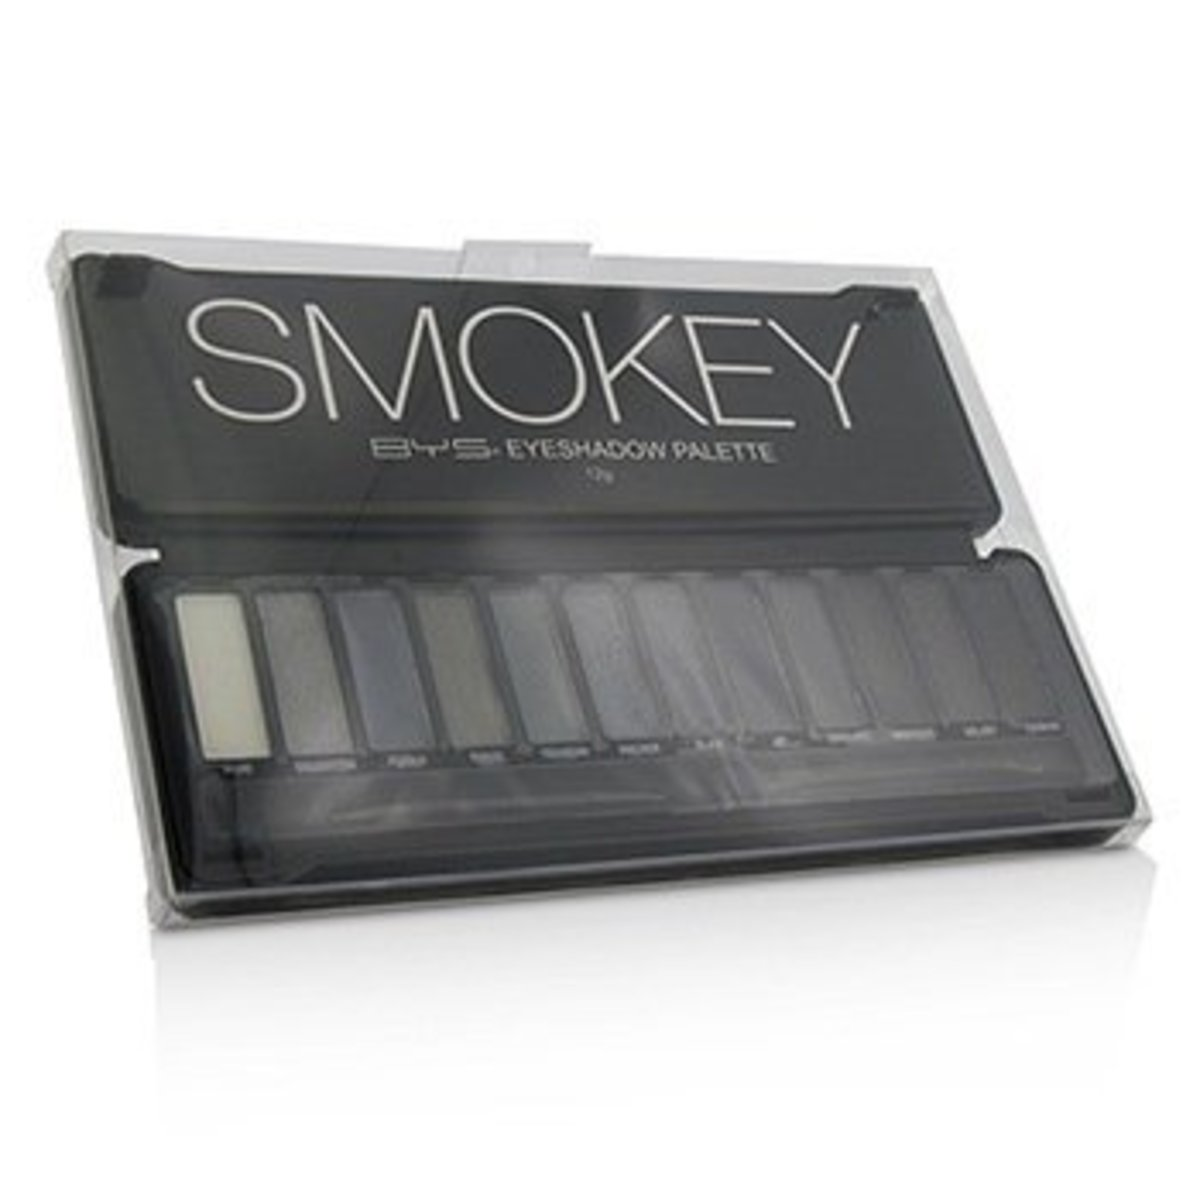 Eyeshadow Palette (12x Eyeshadow, 2x Applicator) - Smokey  -[Parallel Import Product]